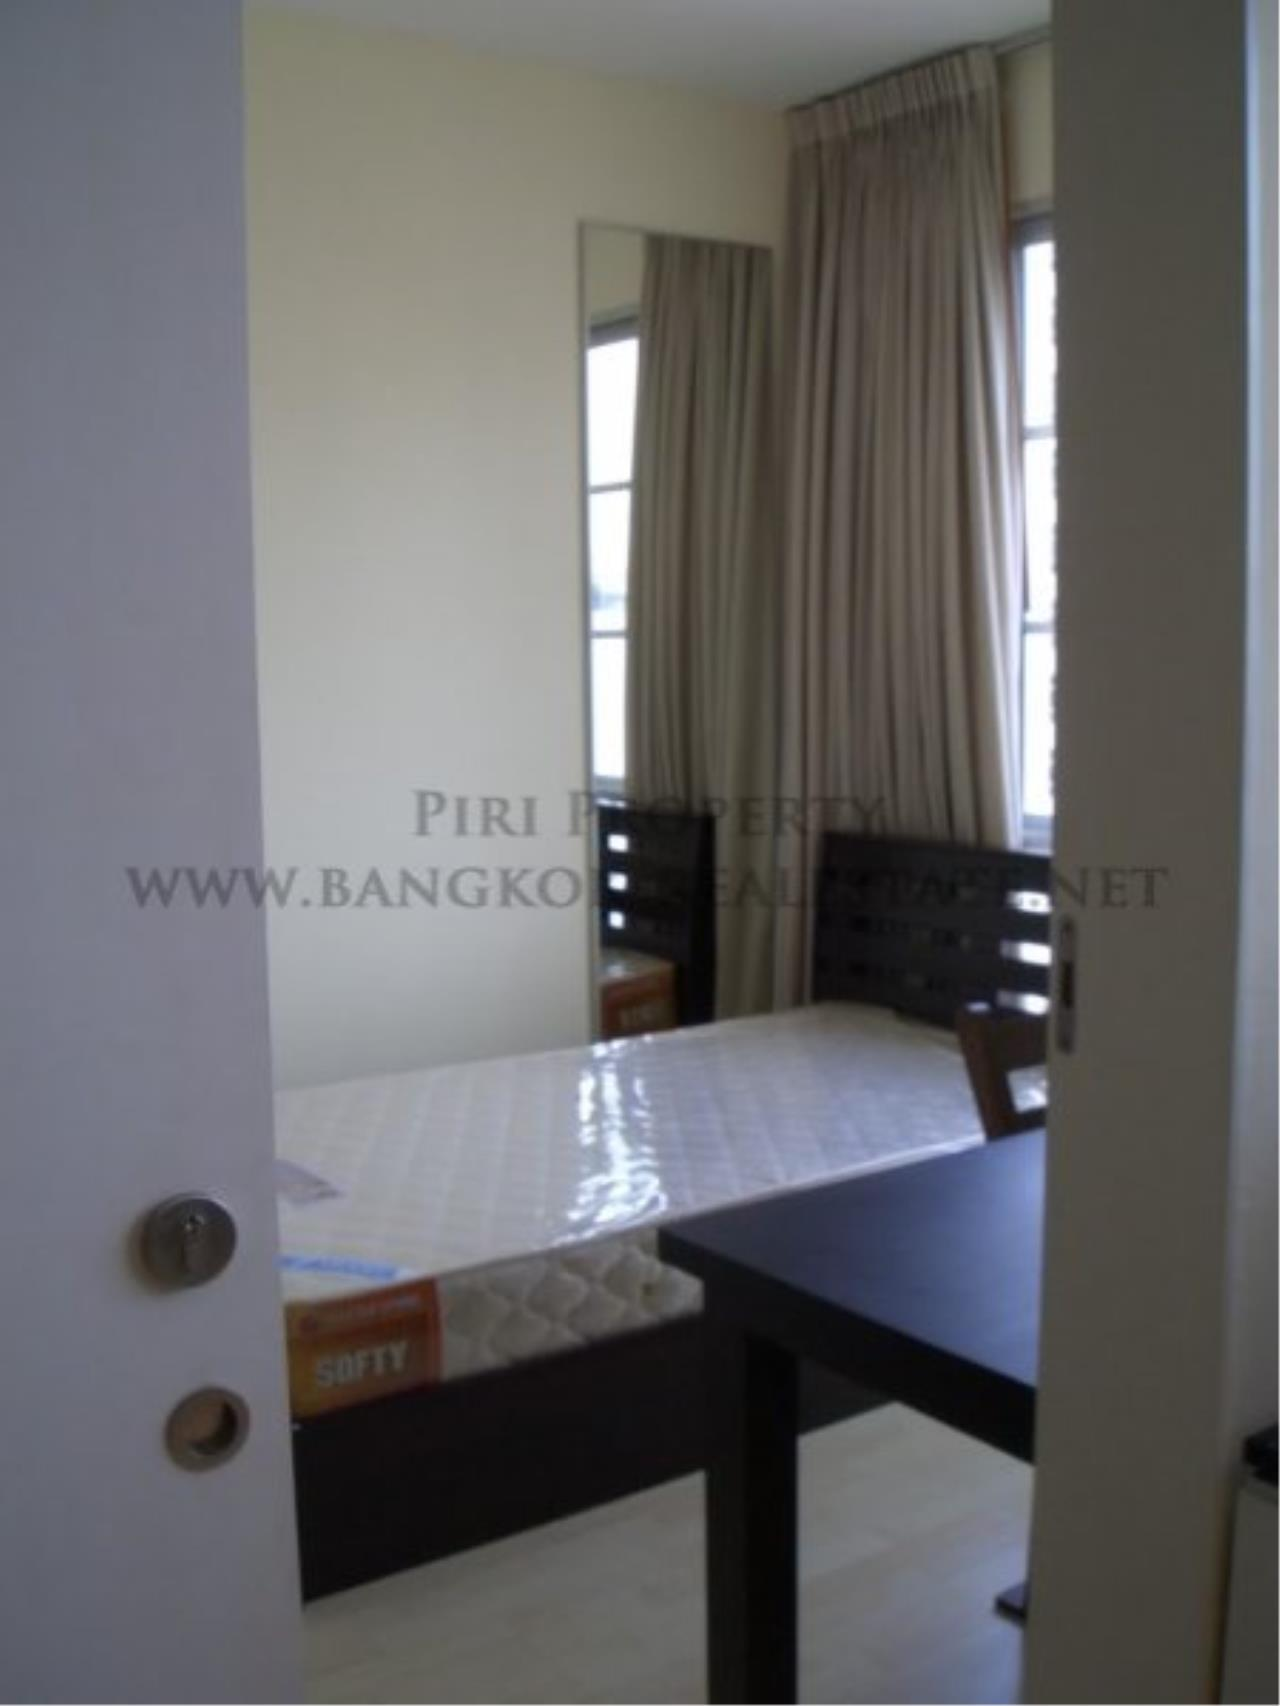 Piri Property Agency's AP Citismart for Rent - Nice 2 Bedroom right next to the BTS Asoke 5